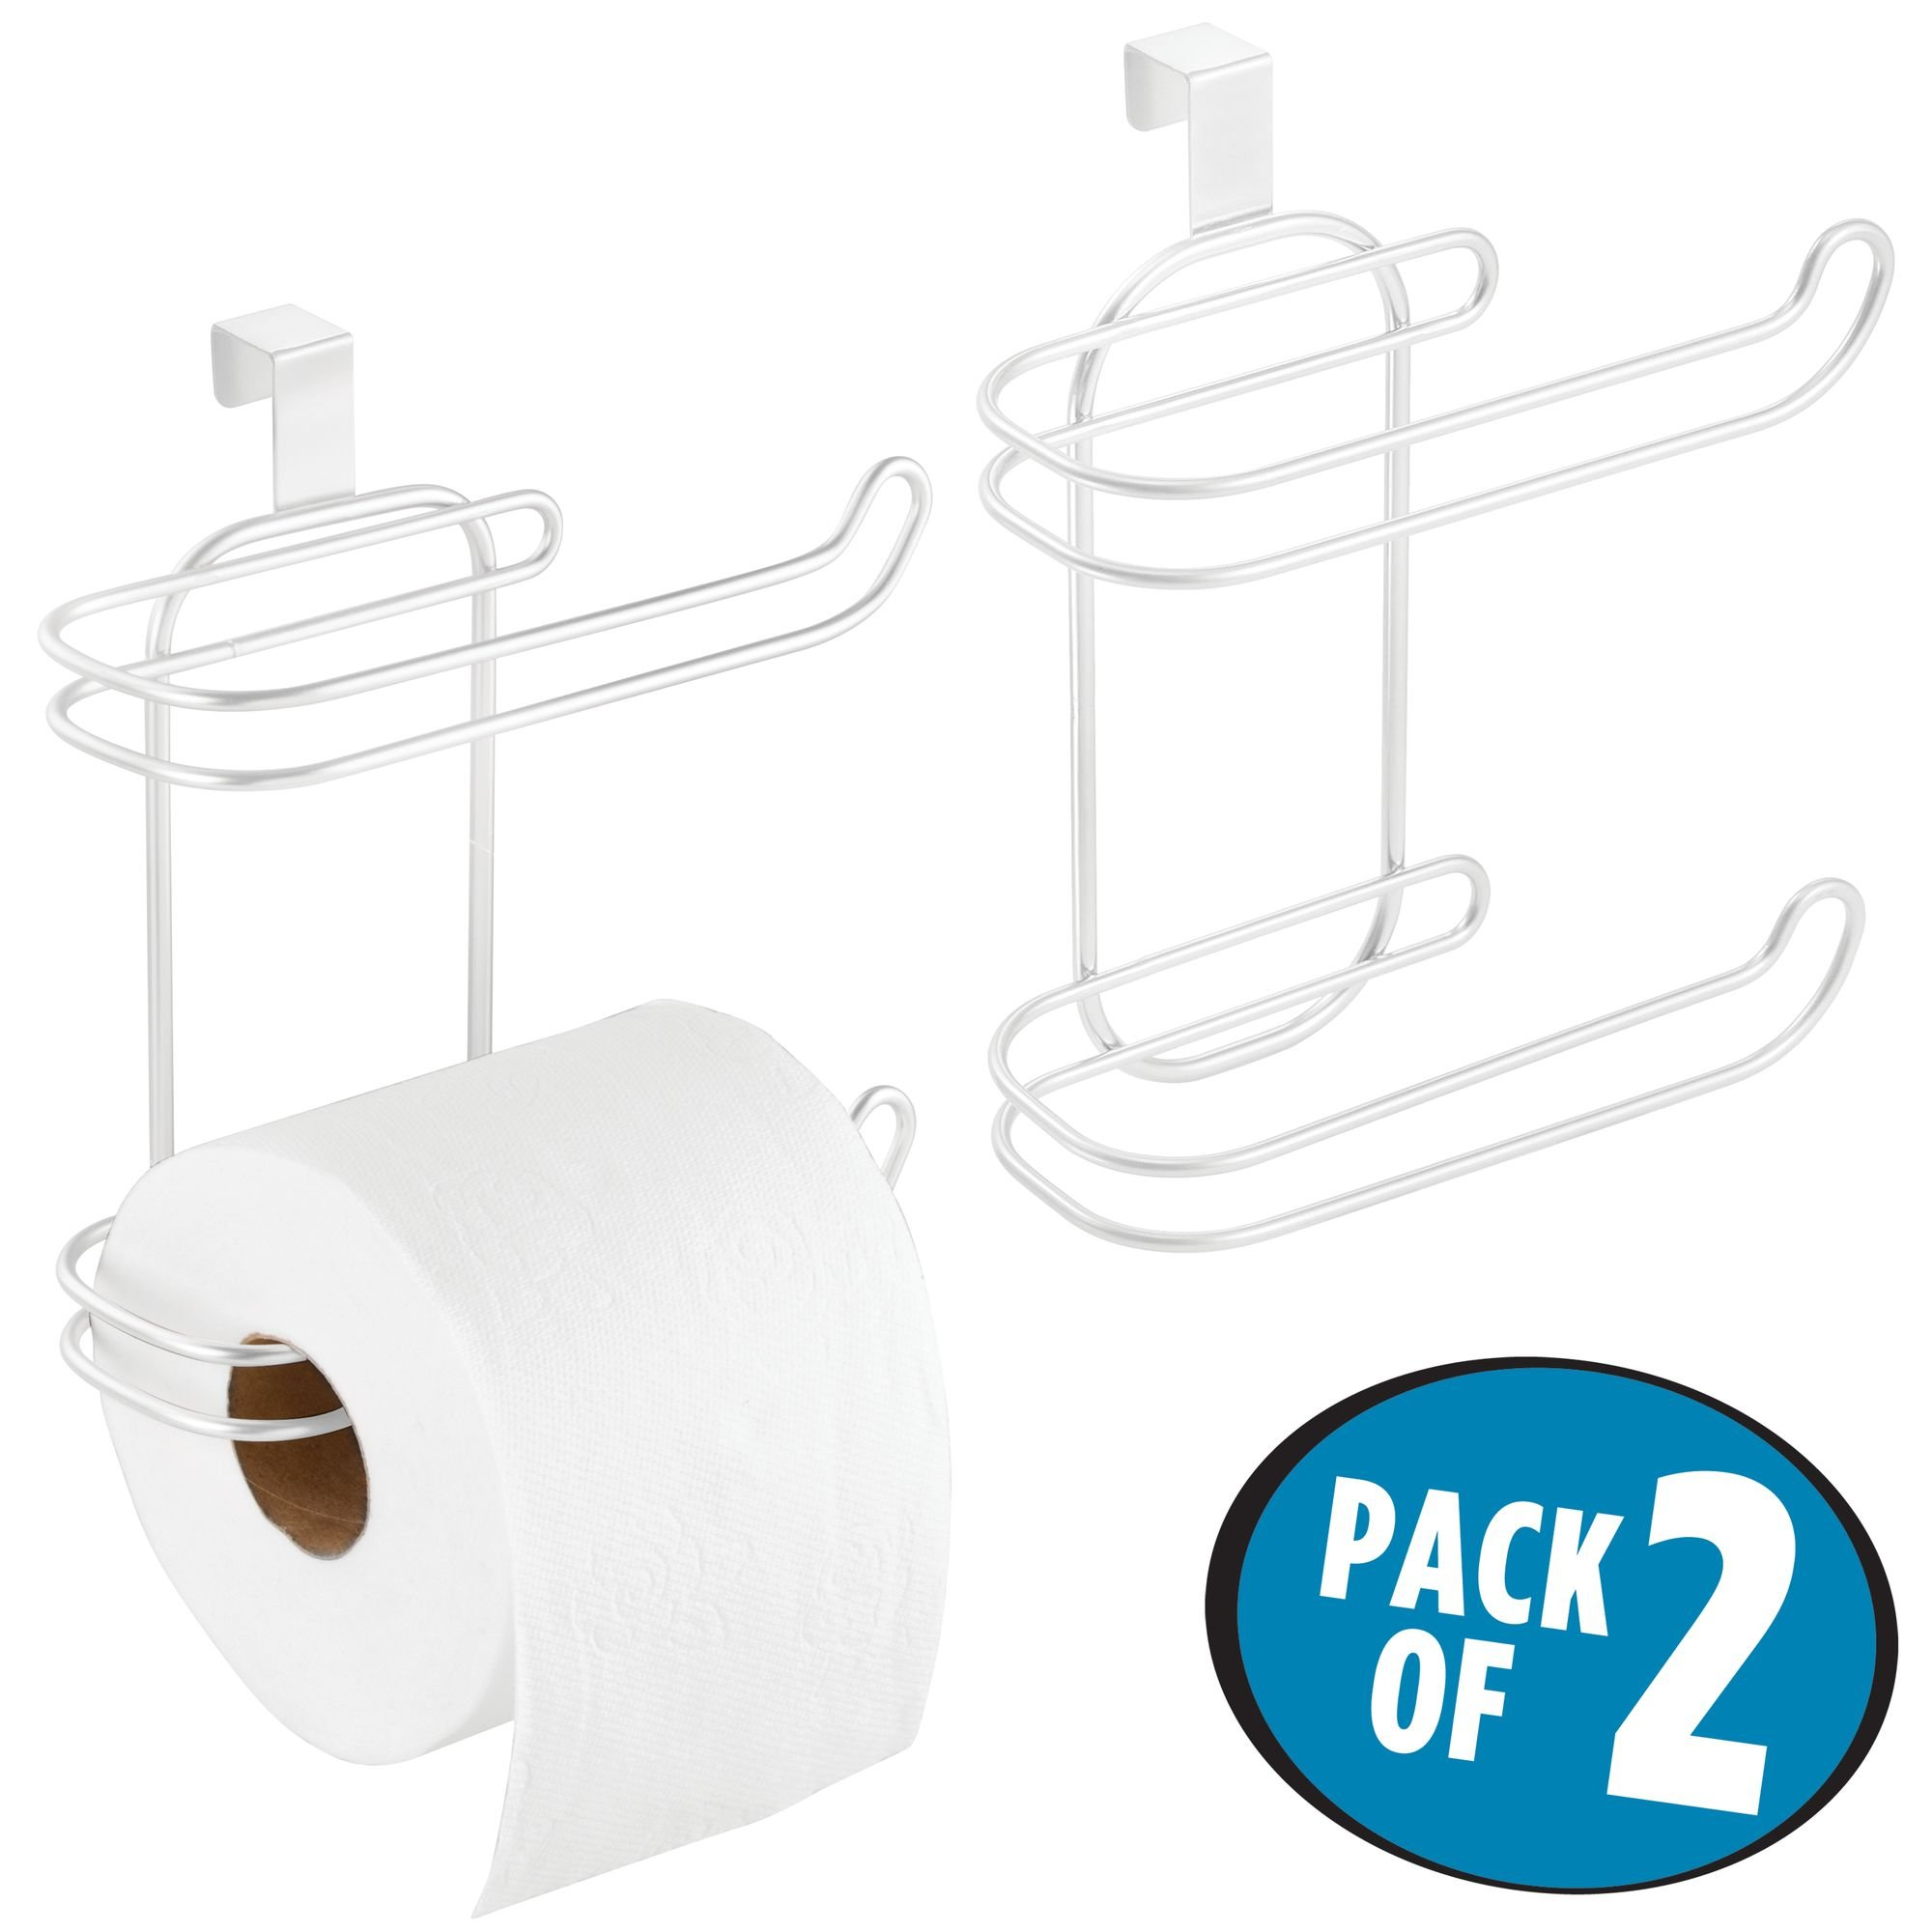 mDesign Compact Hanging Over The Tank Toilet Tissue Paper Roll Holder and Dispenser for Bathroom Storage - Holds 1 Extra Roll - Space Saving Design - Pack of 2, Durable Metal Wire in White Finish by mDesign (Image #2)